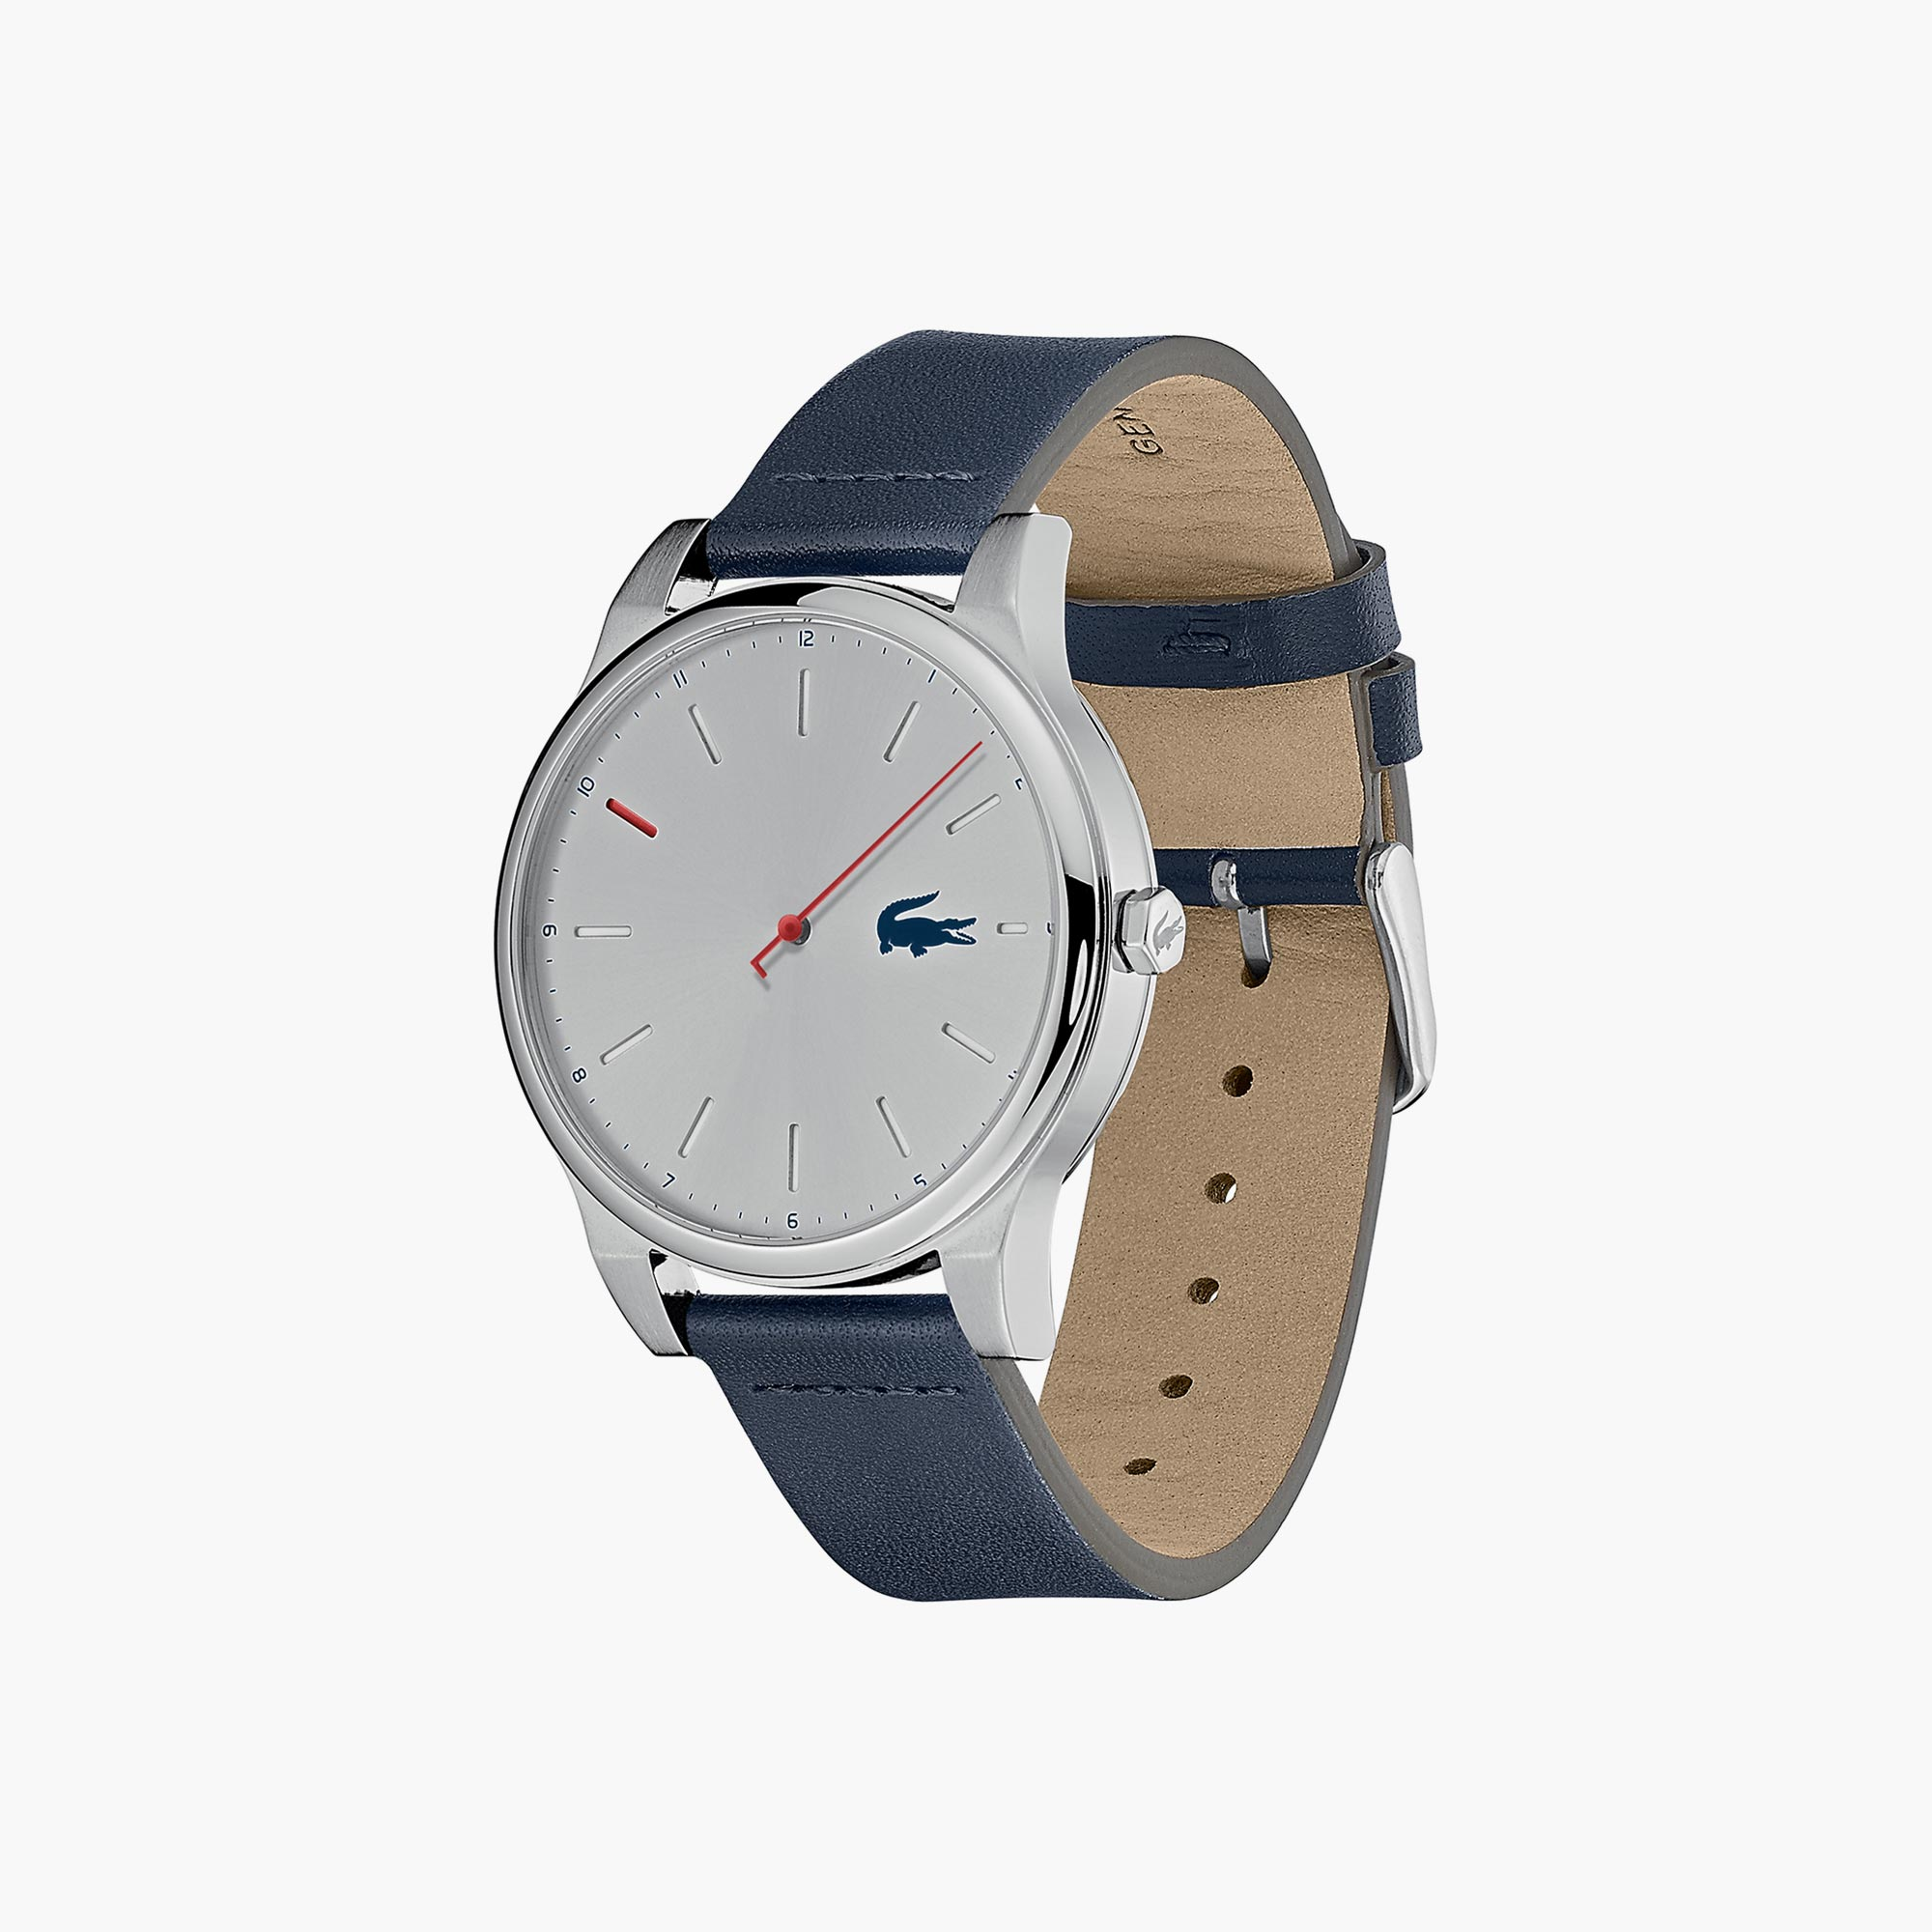 Gents Kyoto Watch with Blue Leather Strap